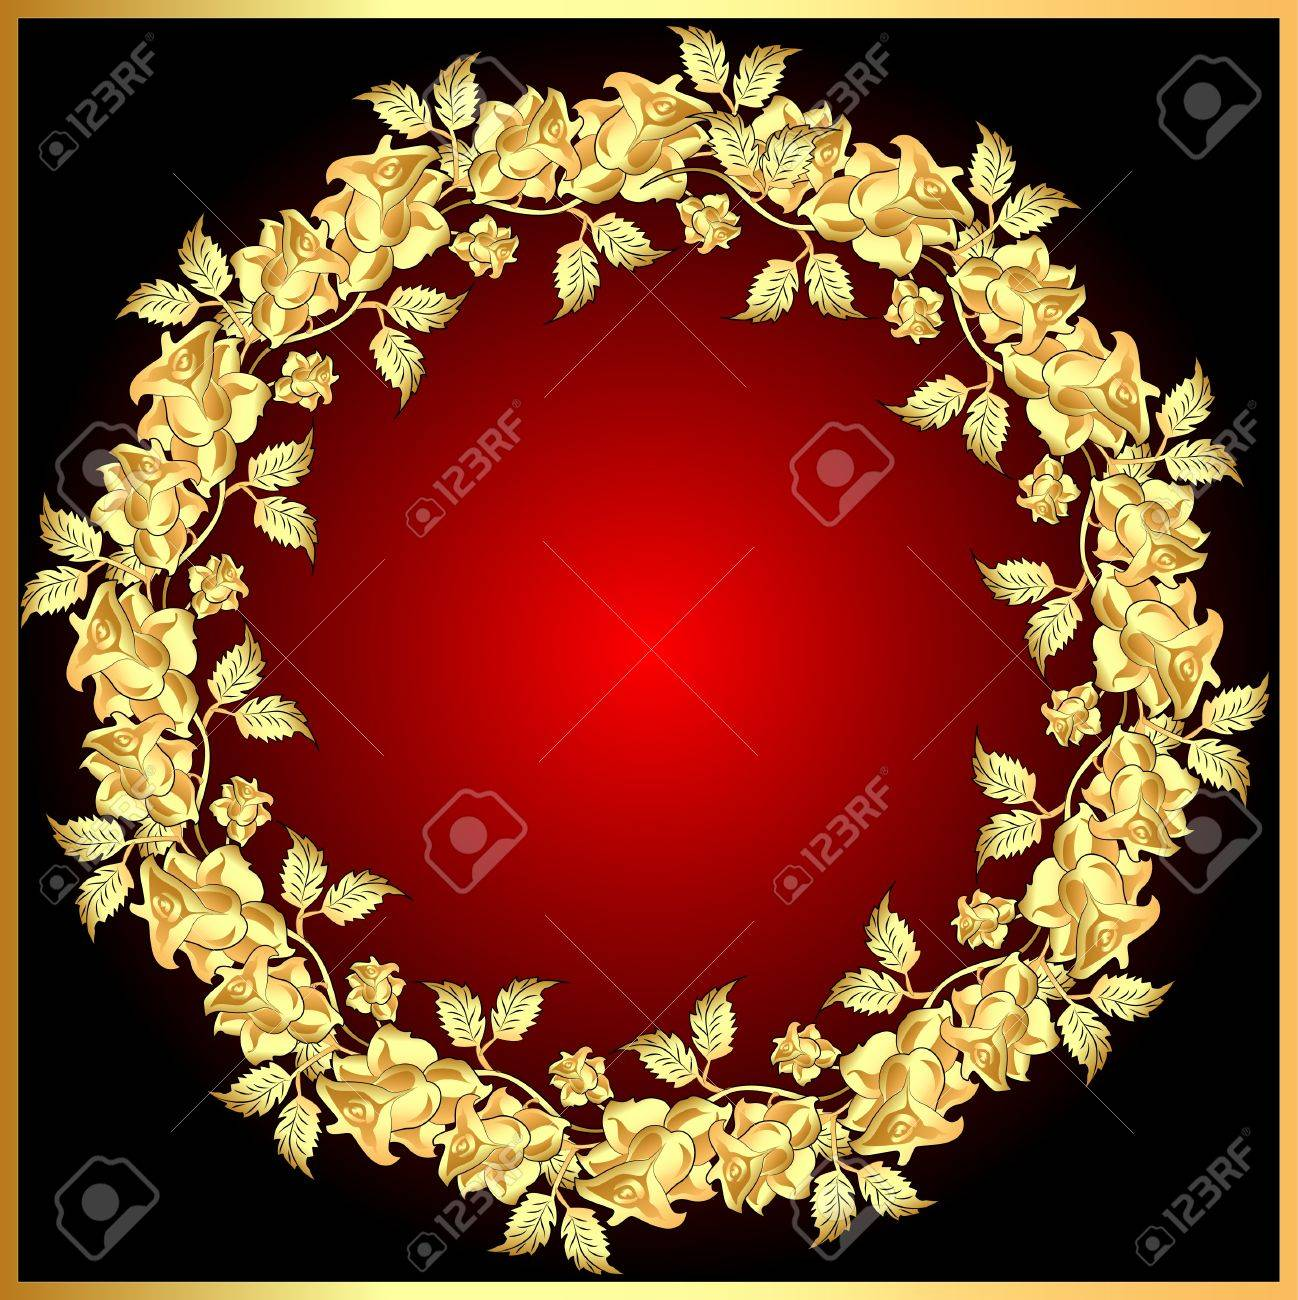 illustration background with gold(en) rose on circle Stock Vector - 12076812